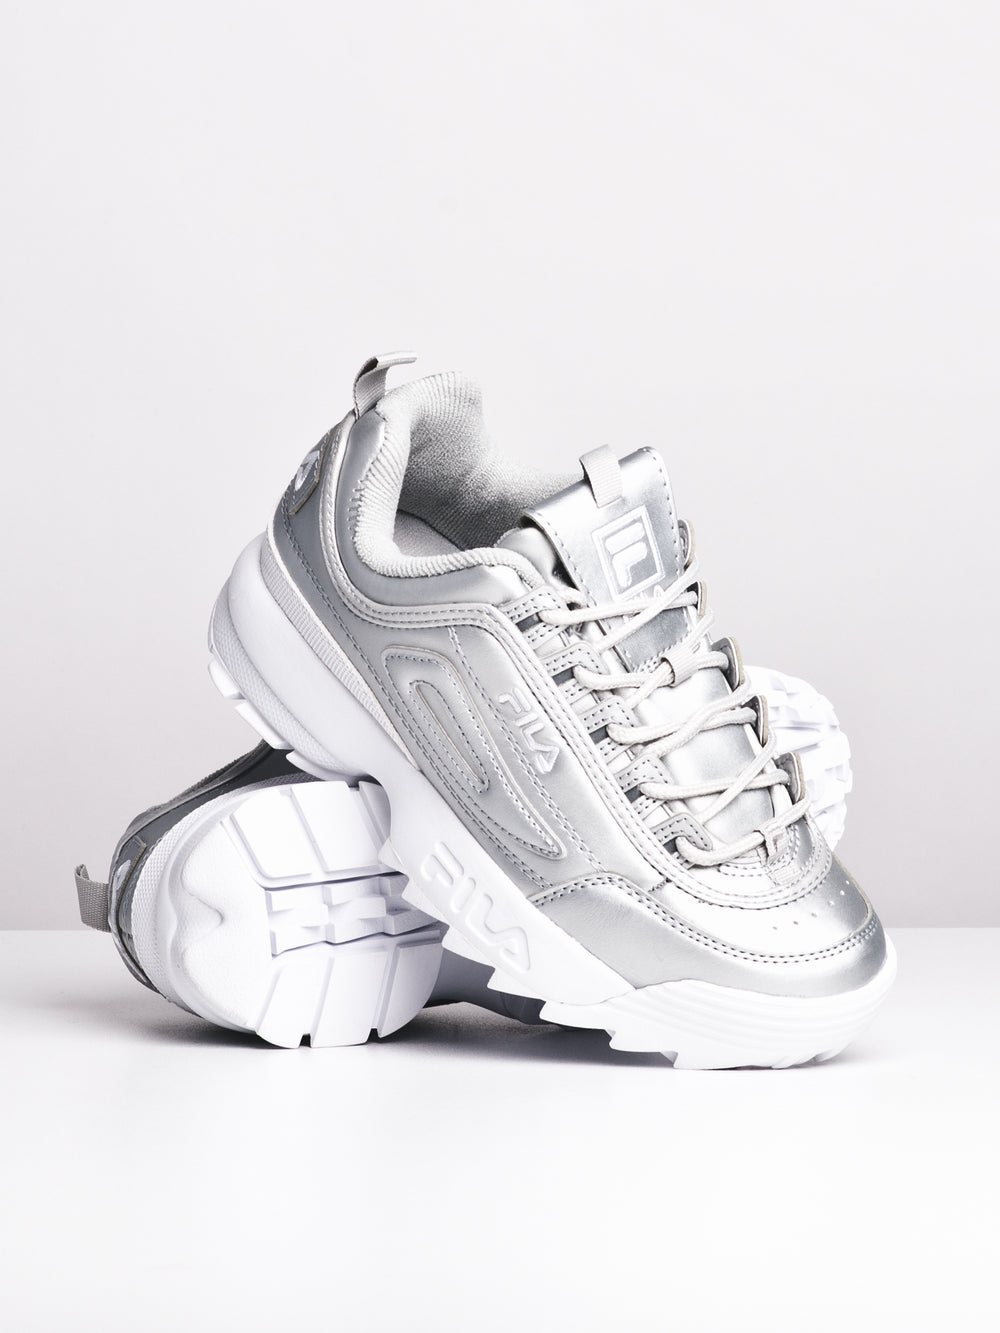 WOMENS DISRUPTOR II PREM - METALLIC